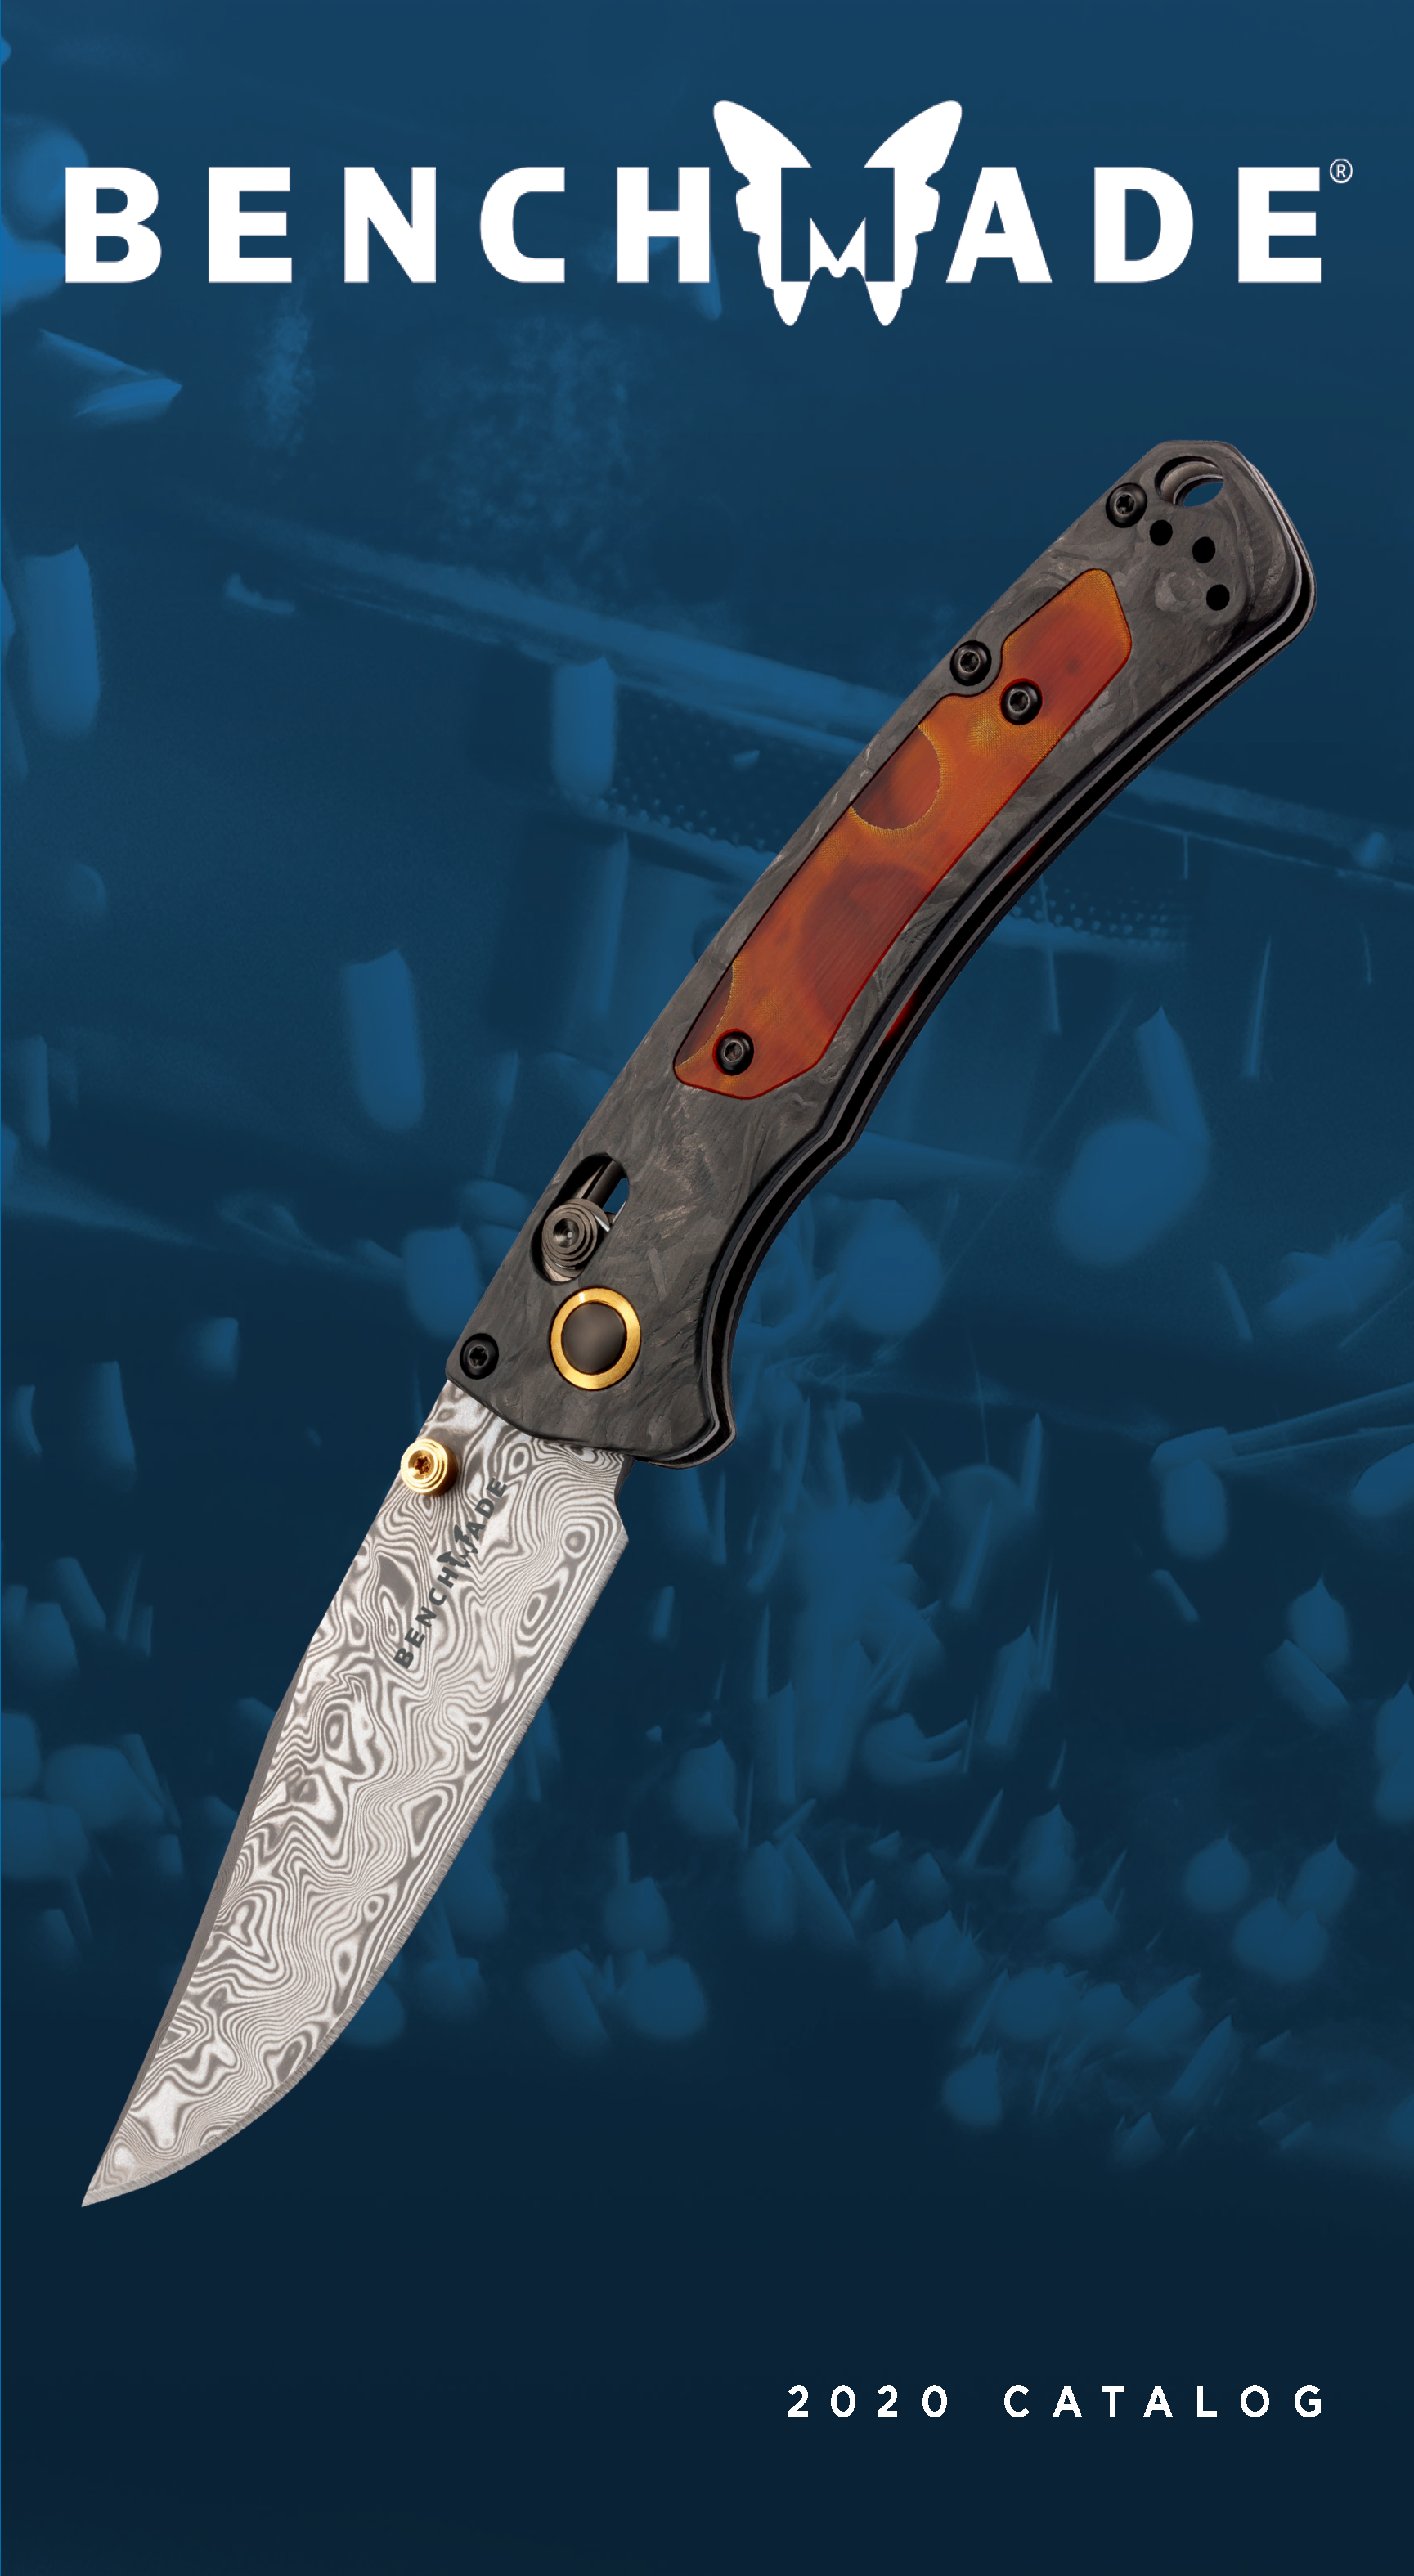 Benchmade Catalog Cover Gold Class Mini Crooked River